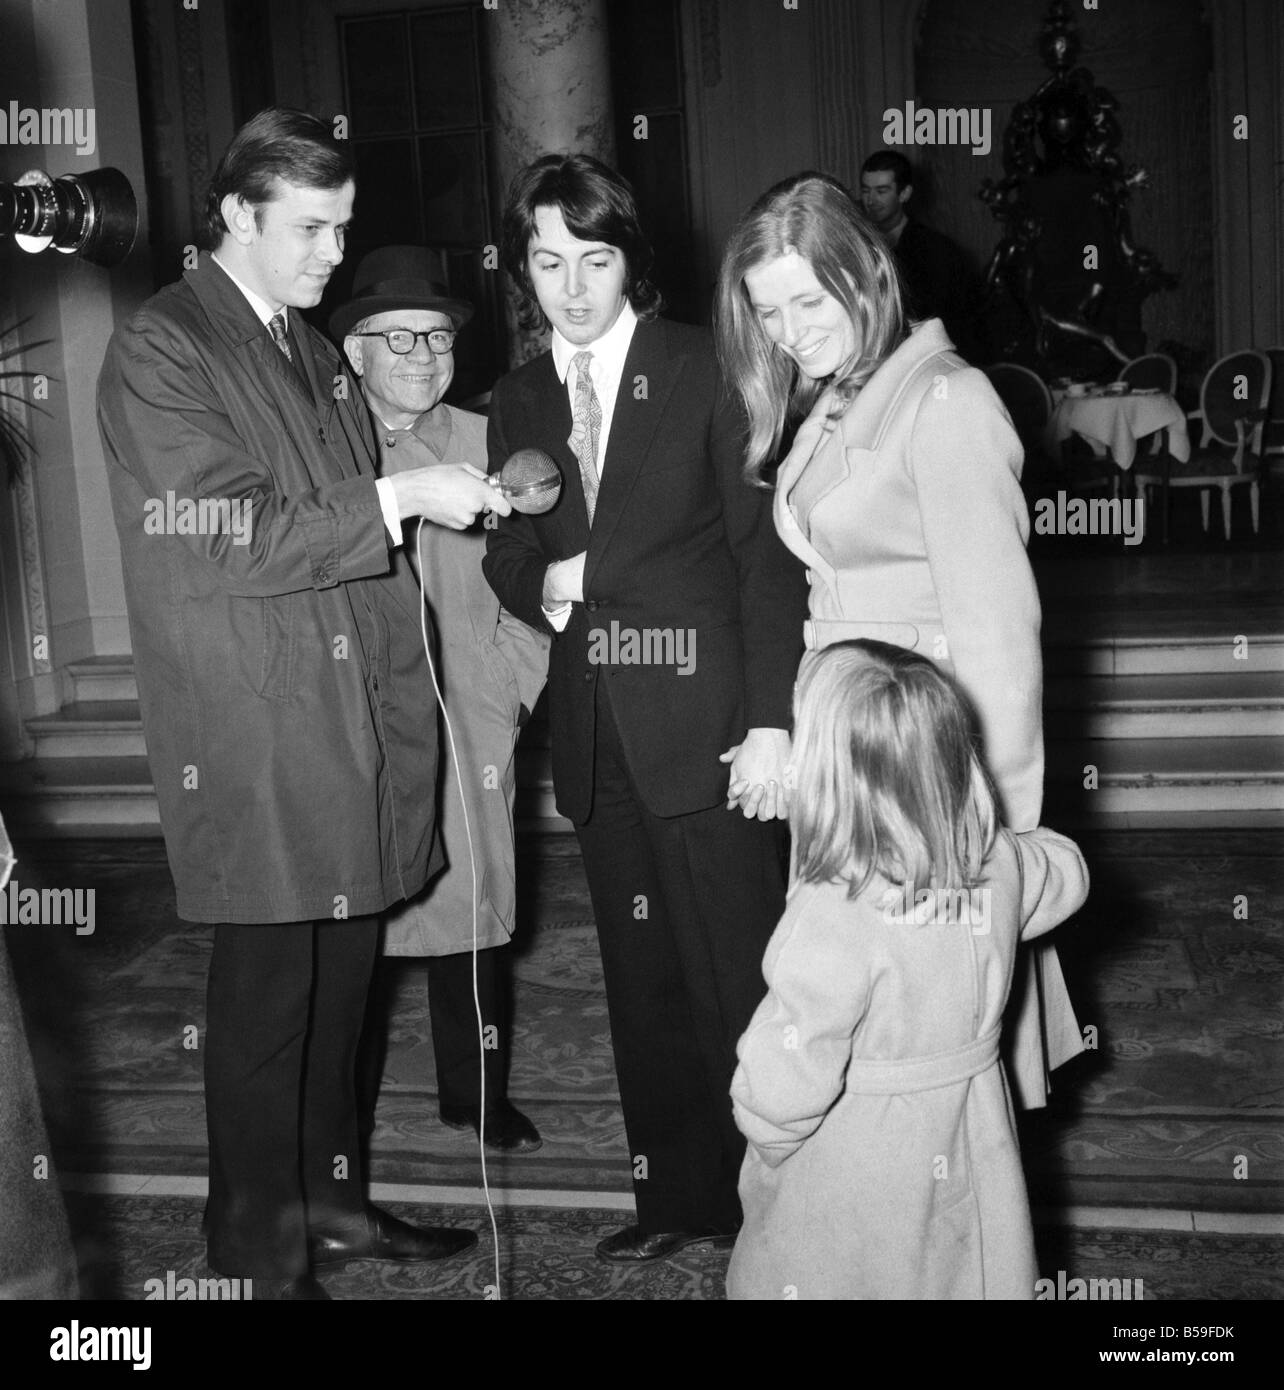 Beatles Singer Paul McCartney With His Bride Linda Eastman And Her Daughter Heather After Their Wedding CeremonyLunch Was Had At The Ritz Hotel March